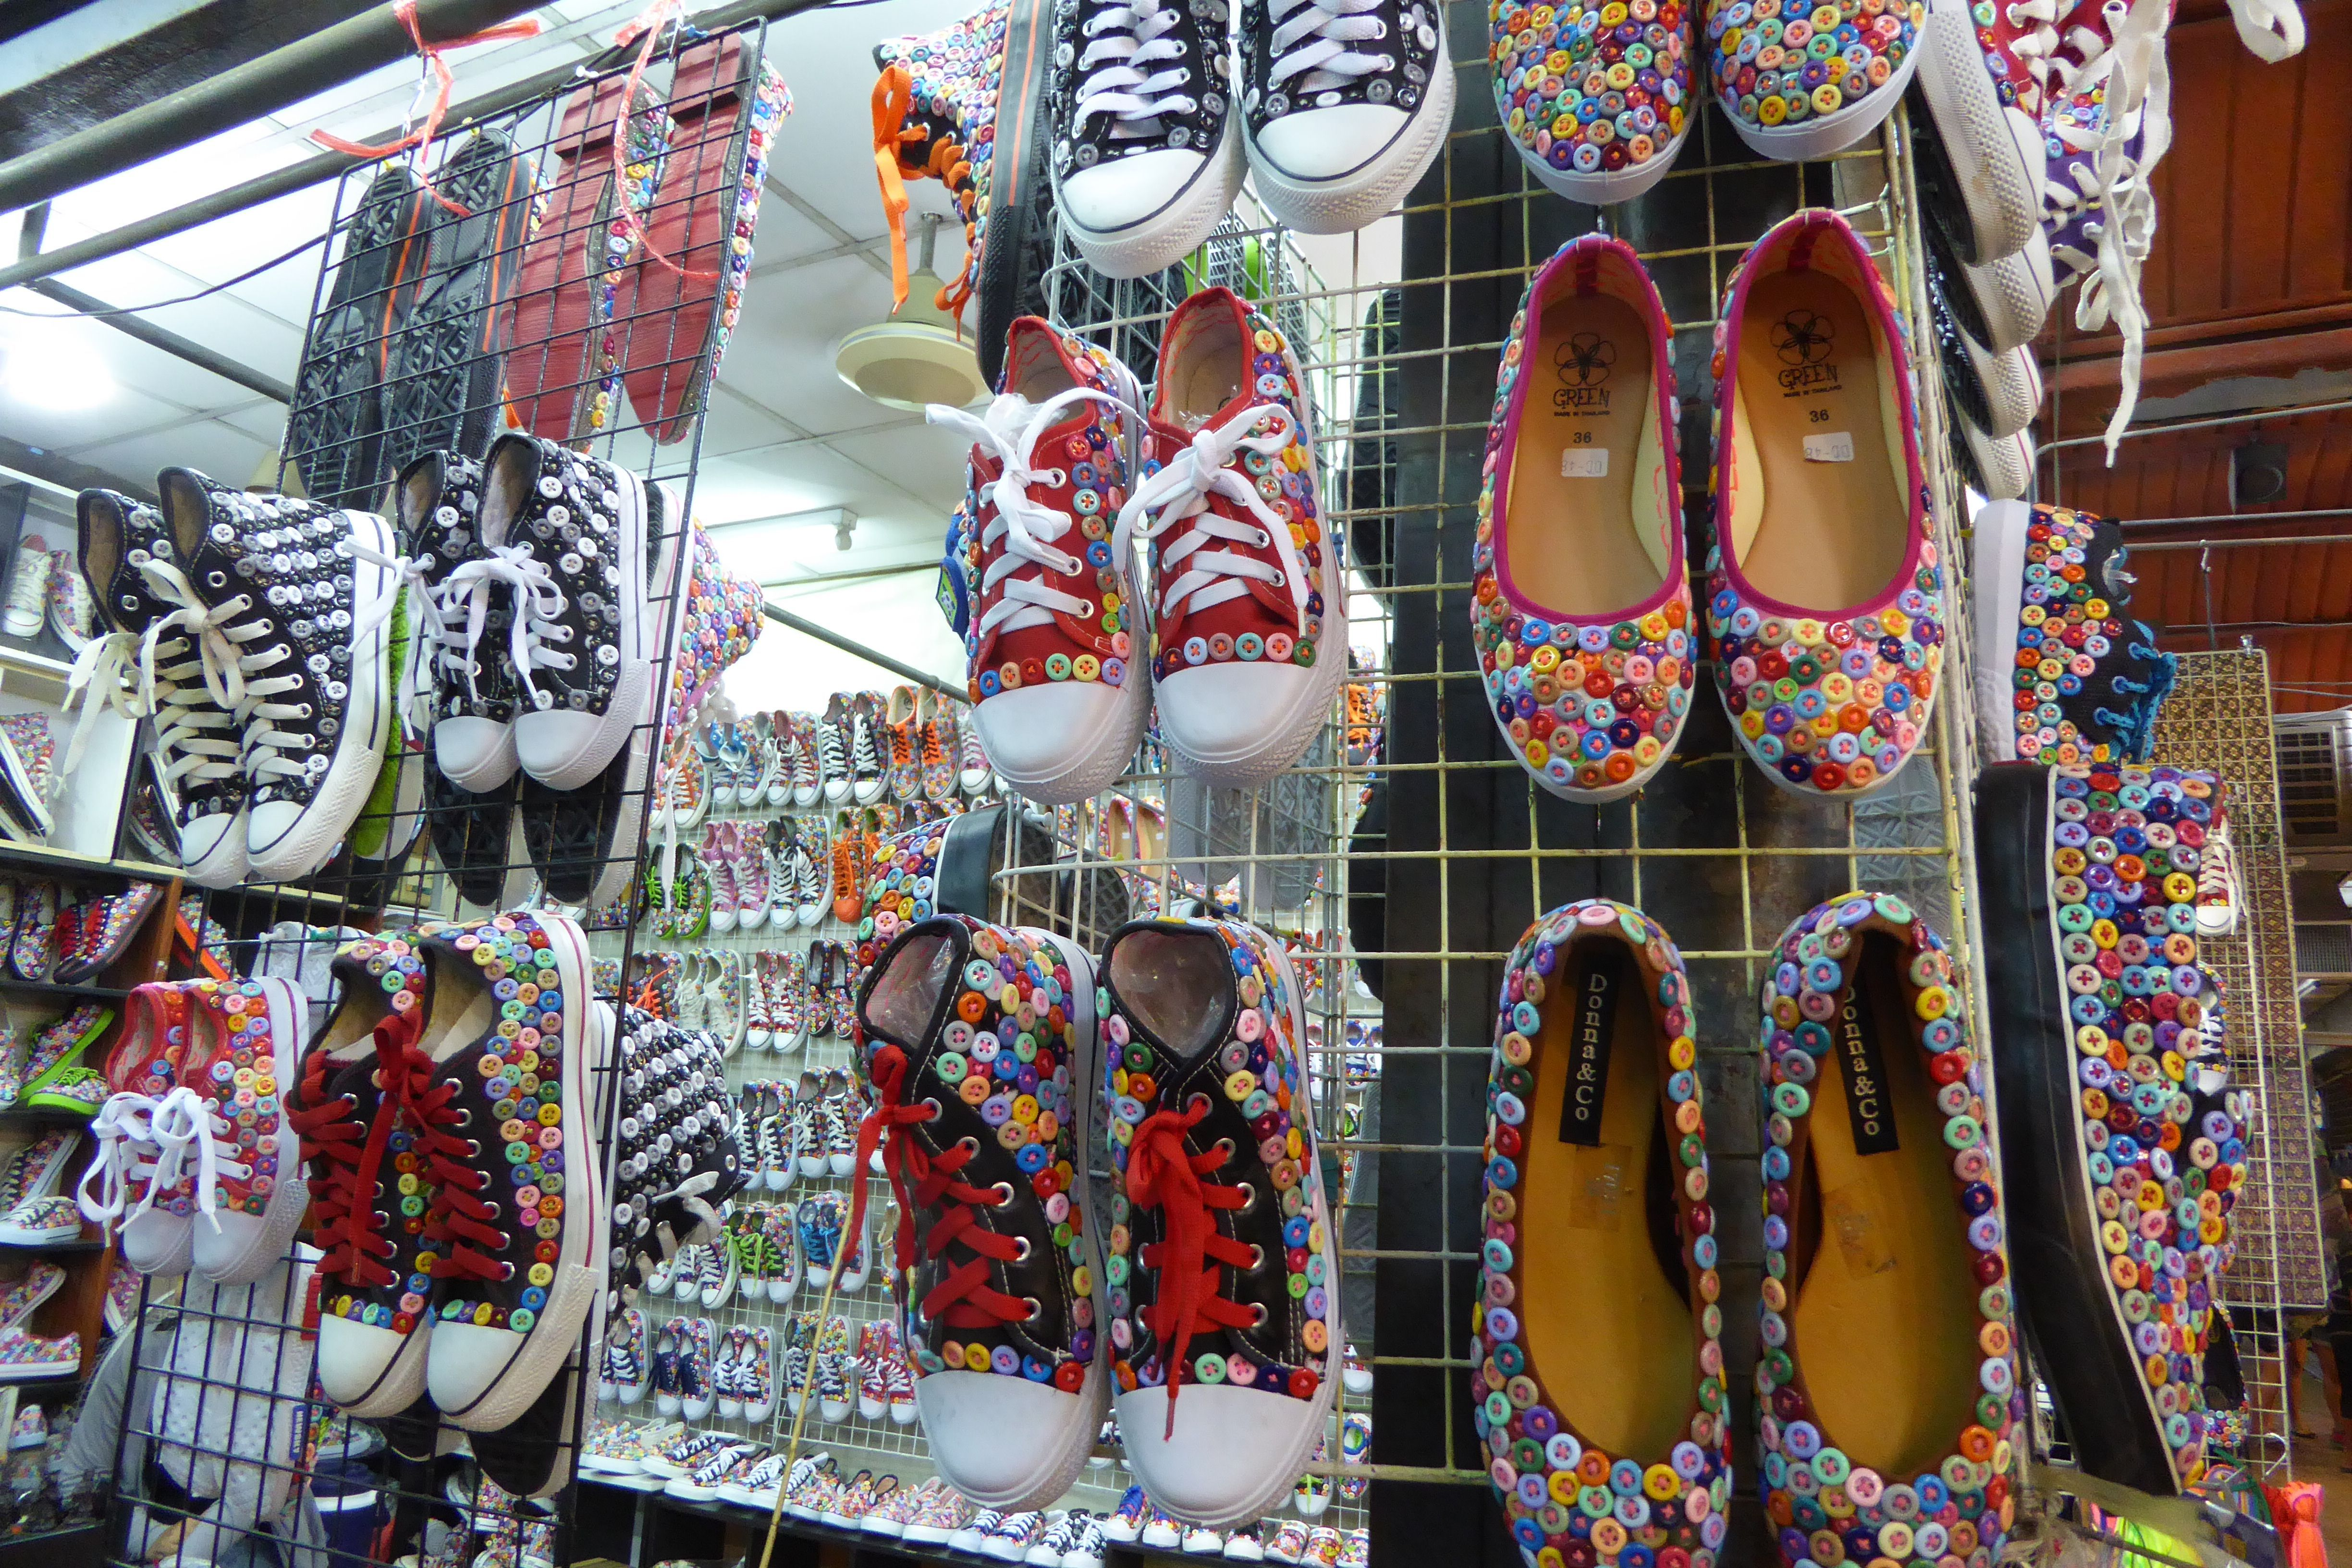 c46f588ef Shoes covered with buttons at the Chatuchak Weekend Market